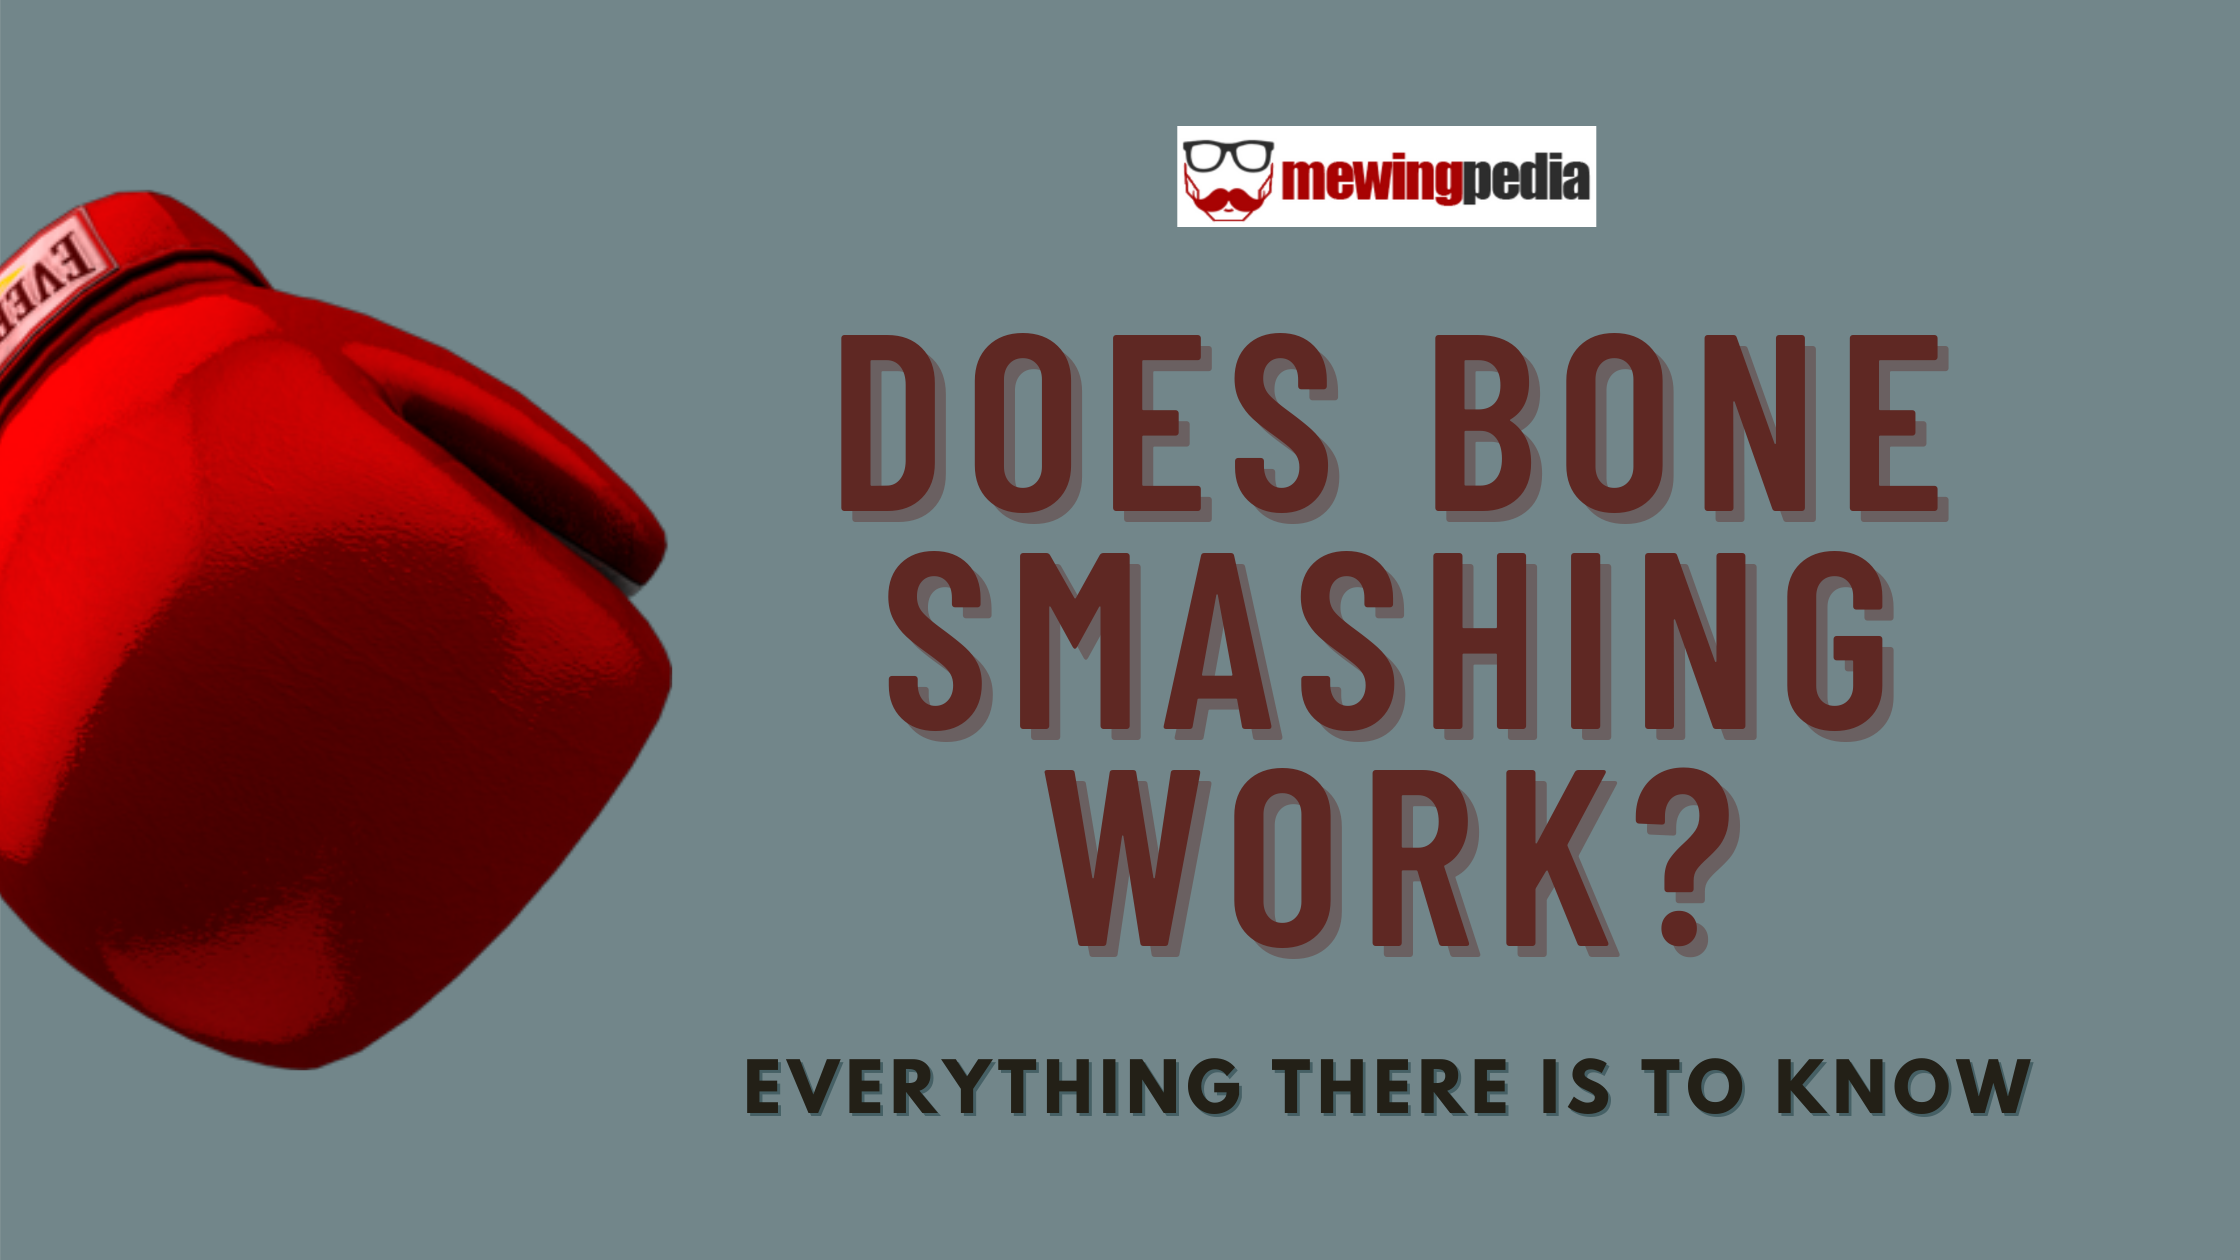 Does Bone Smashing Work? Everything there is to know